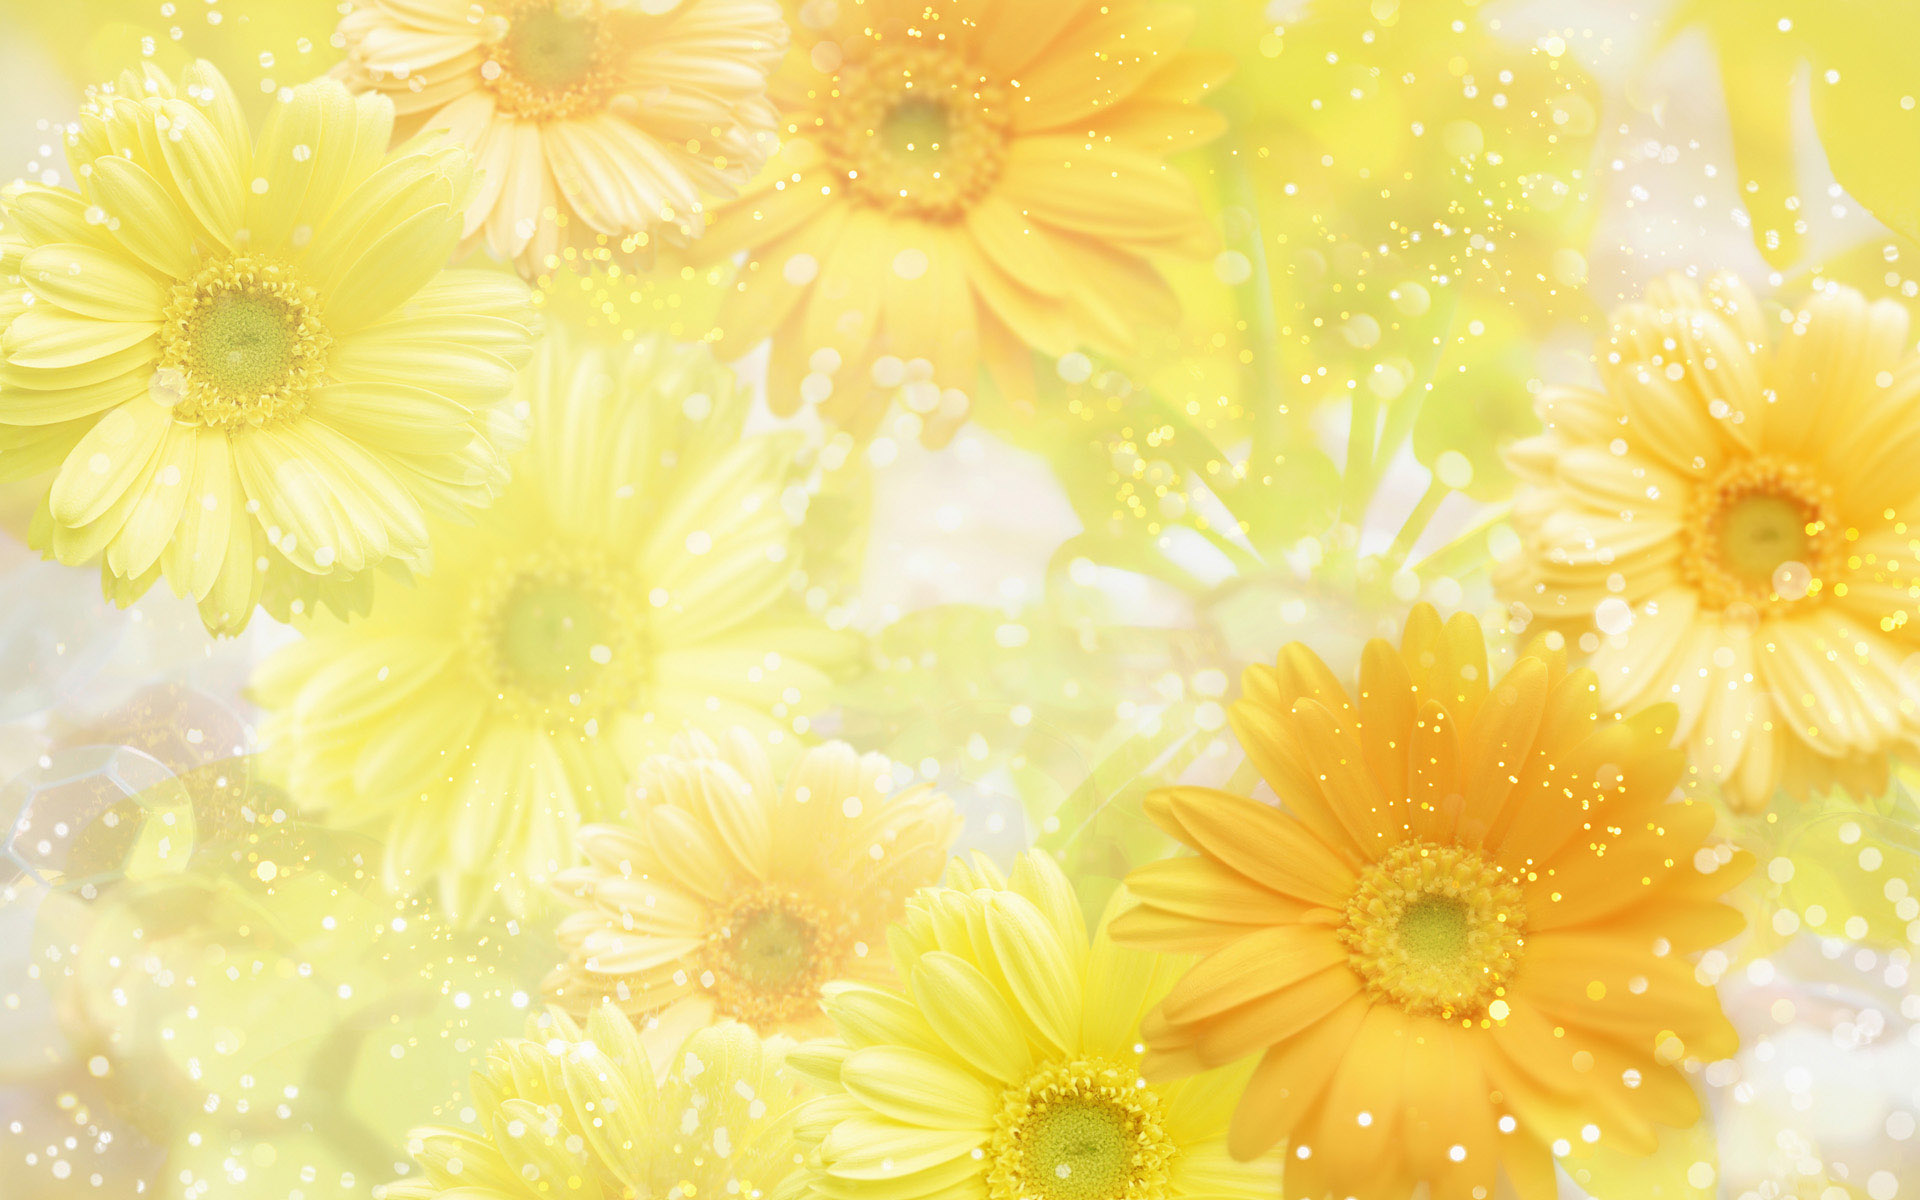 Spring Wallpapers Hd Desktop Background Free Flowers Spring Wallpapers